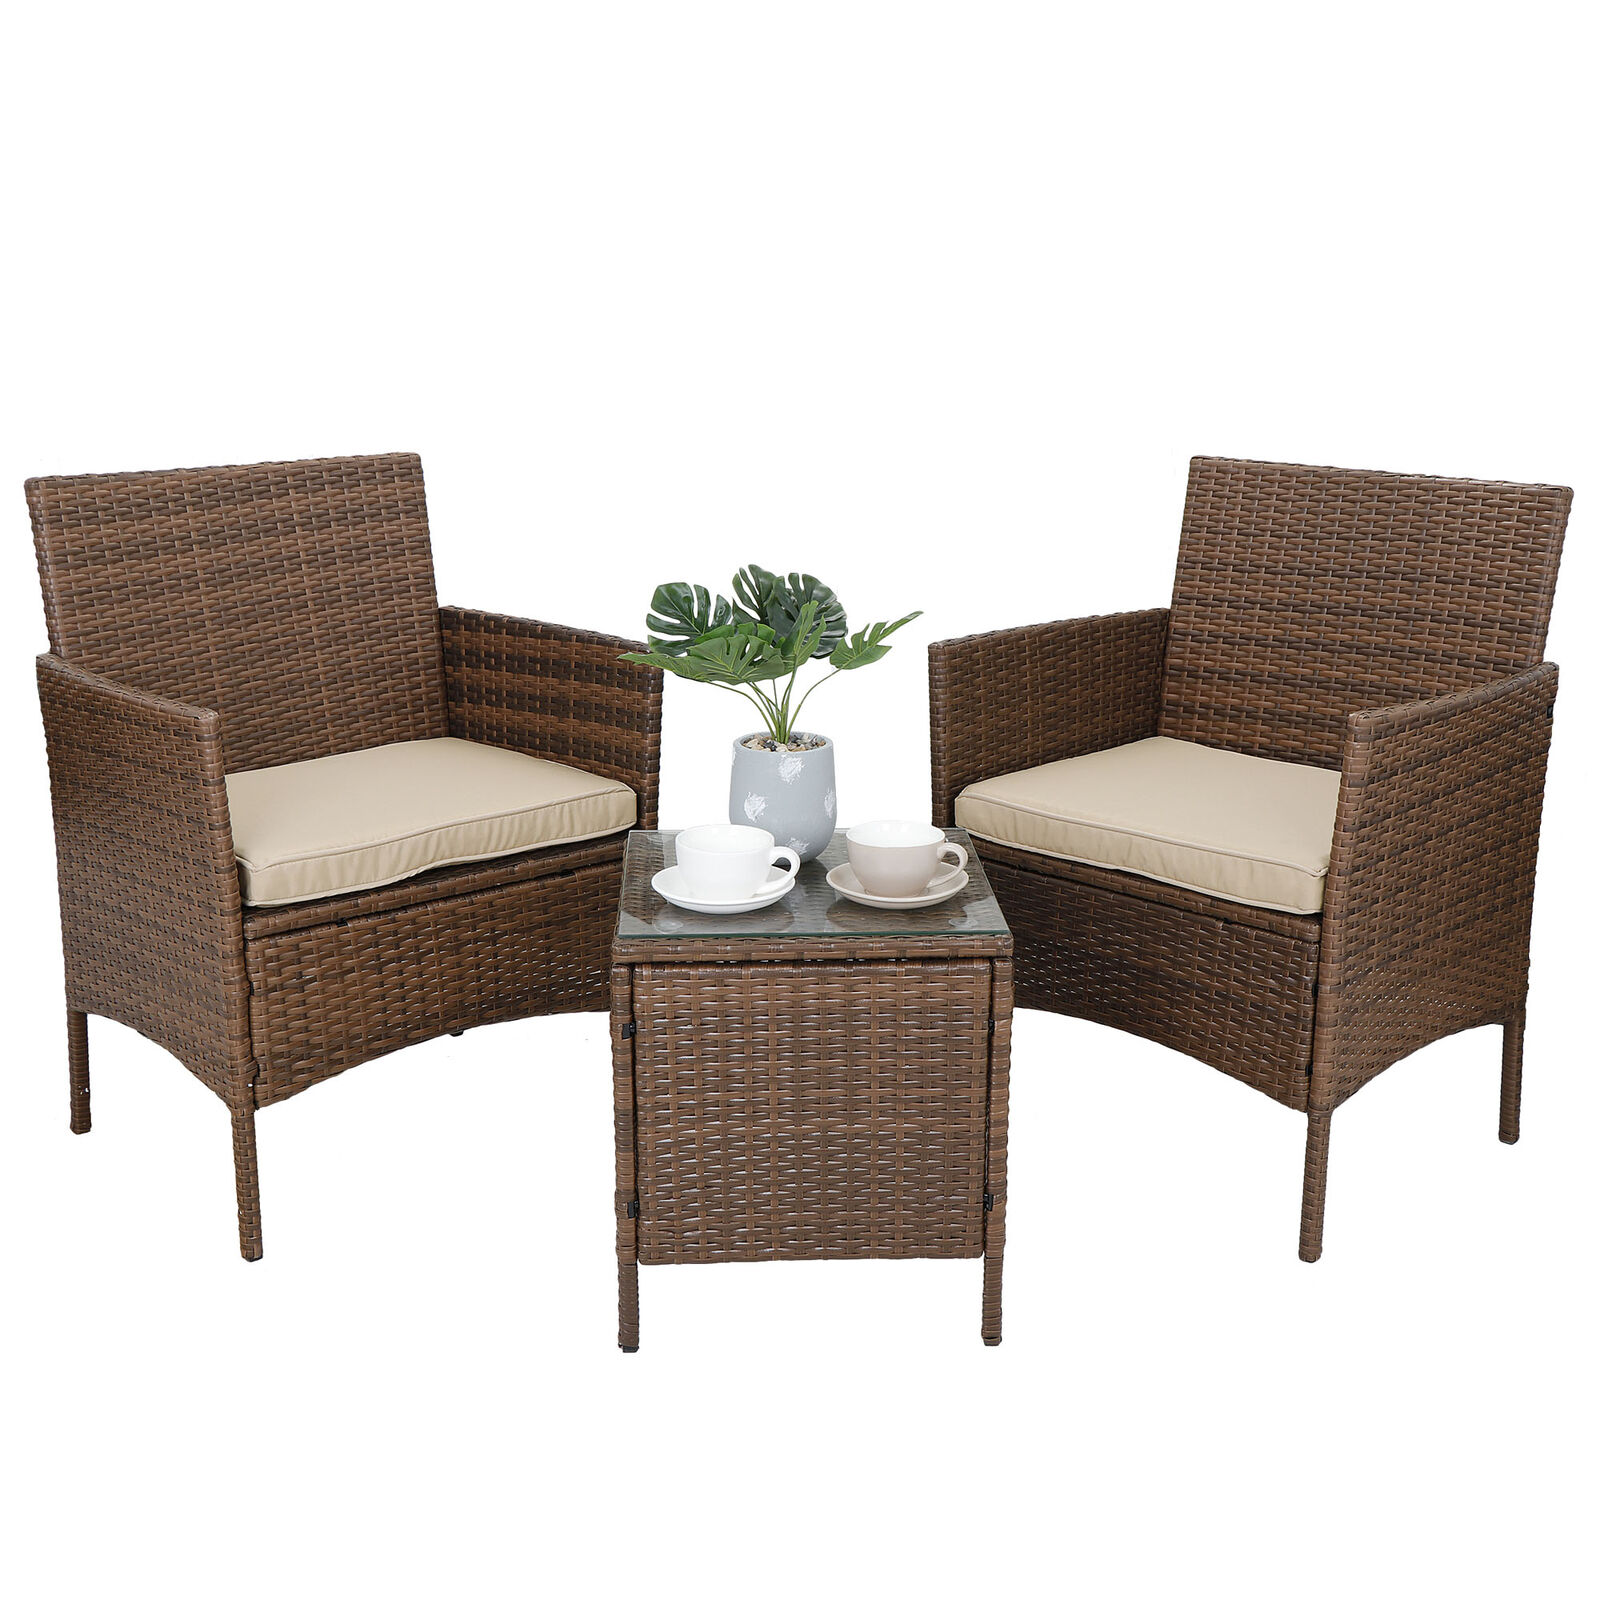 Furniture Sets 9 Pieces PE Rattan Wicker Chairs with Table Outdoor Garden  Brown